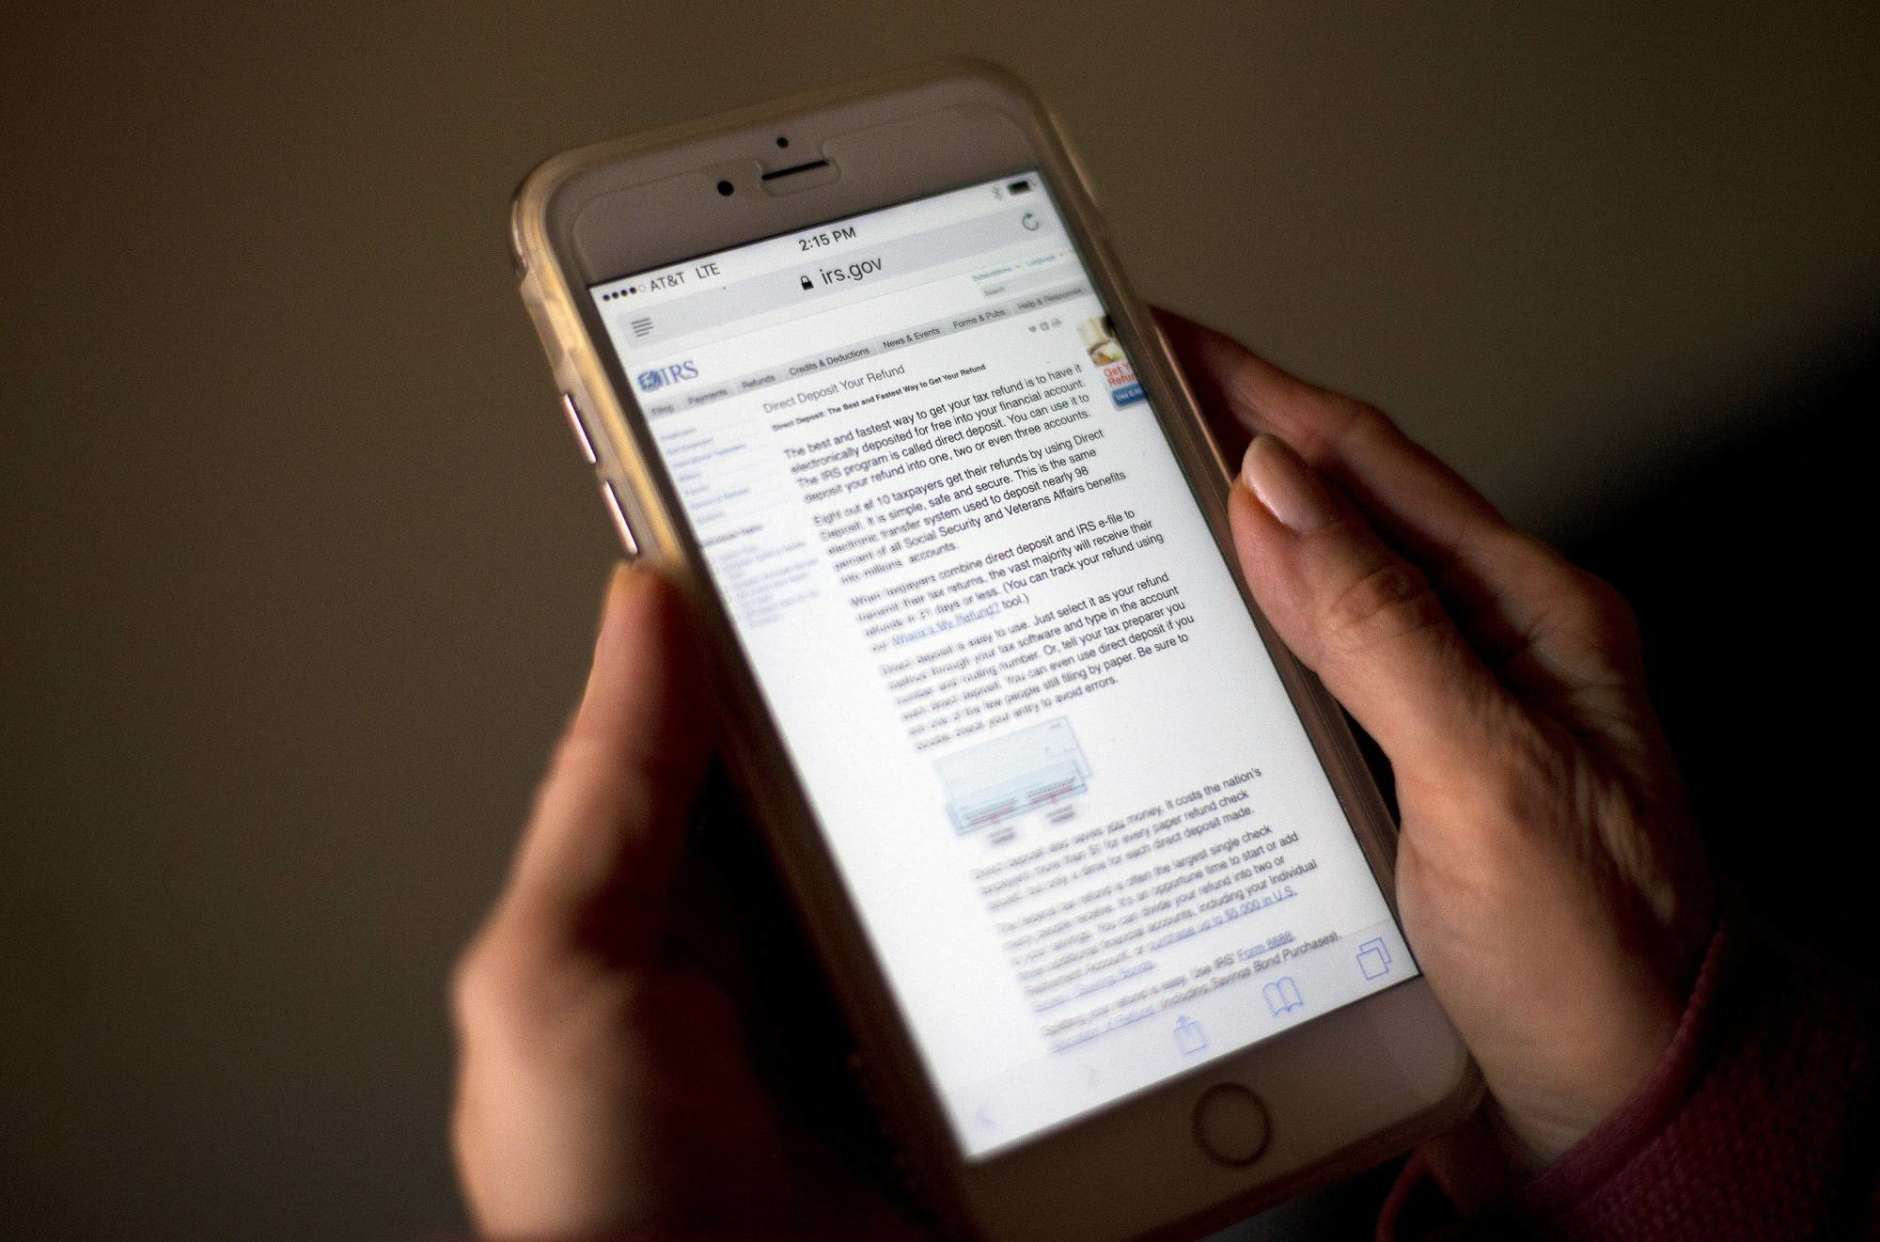 PIV cards could help federal cybersecurity on mobile devices